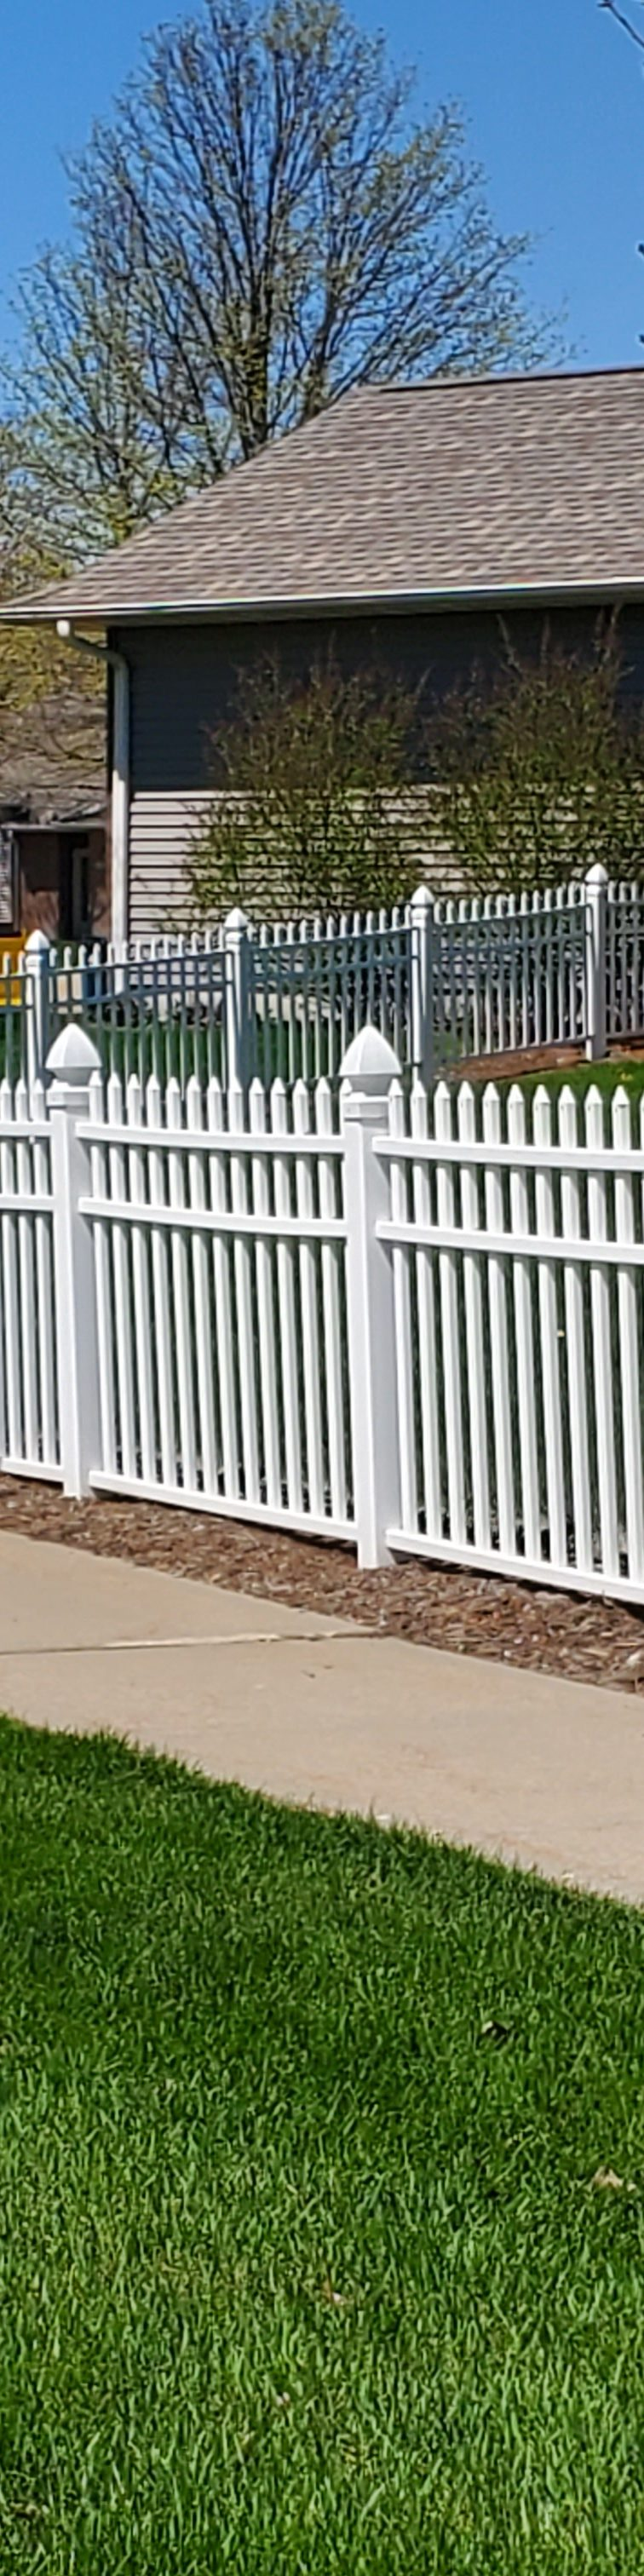 American Fence Company of Iowa City - 4' PVC Classic Picket Vinyl Fence